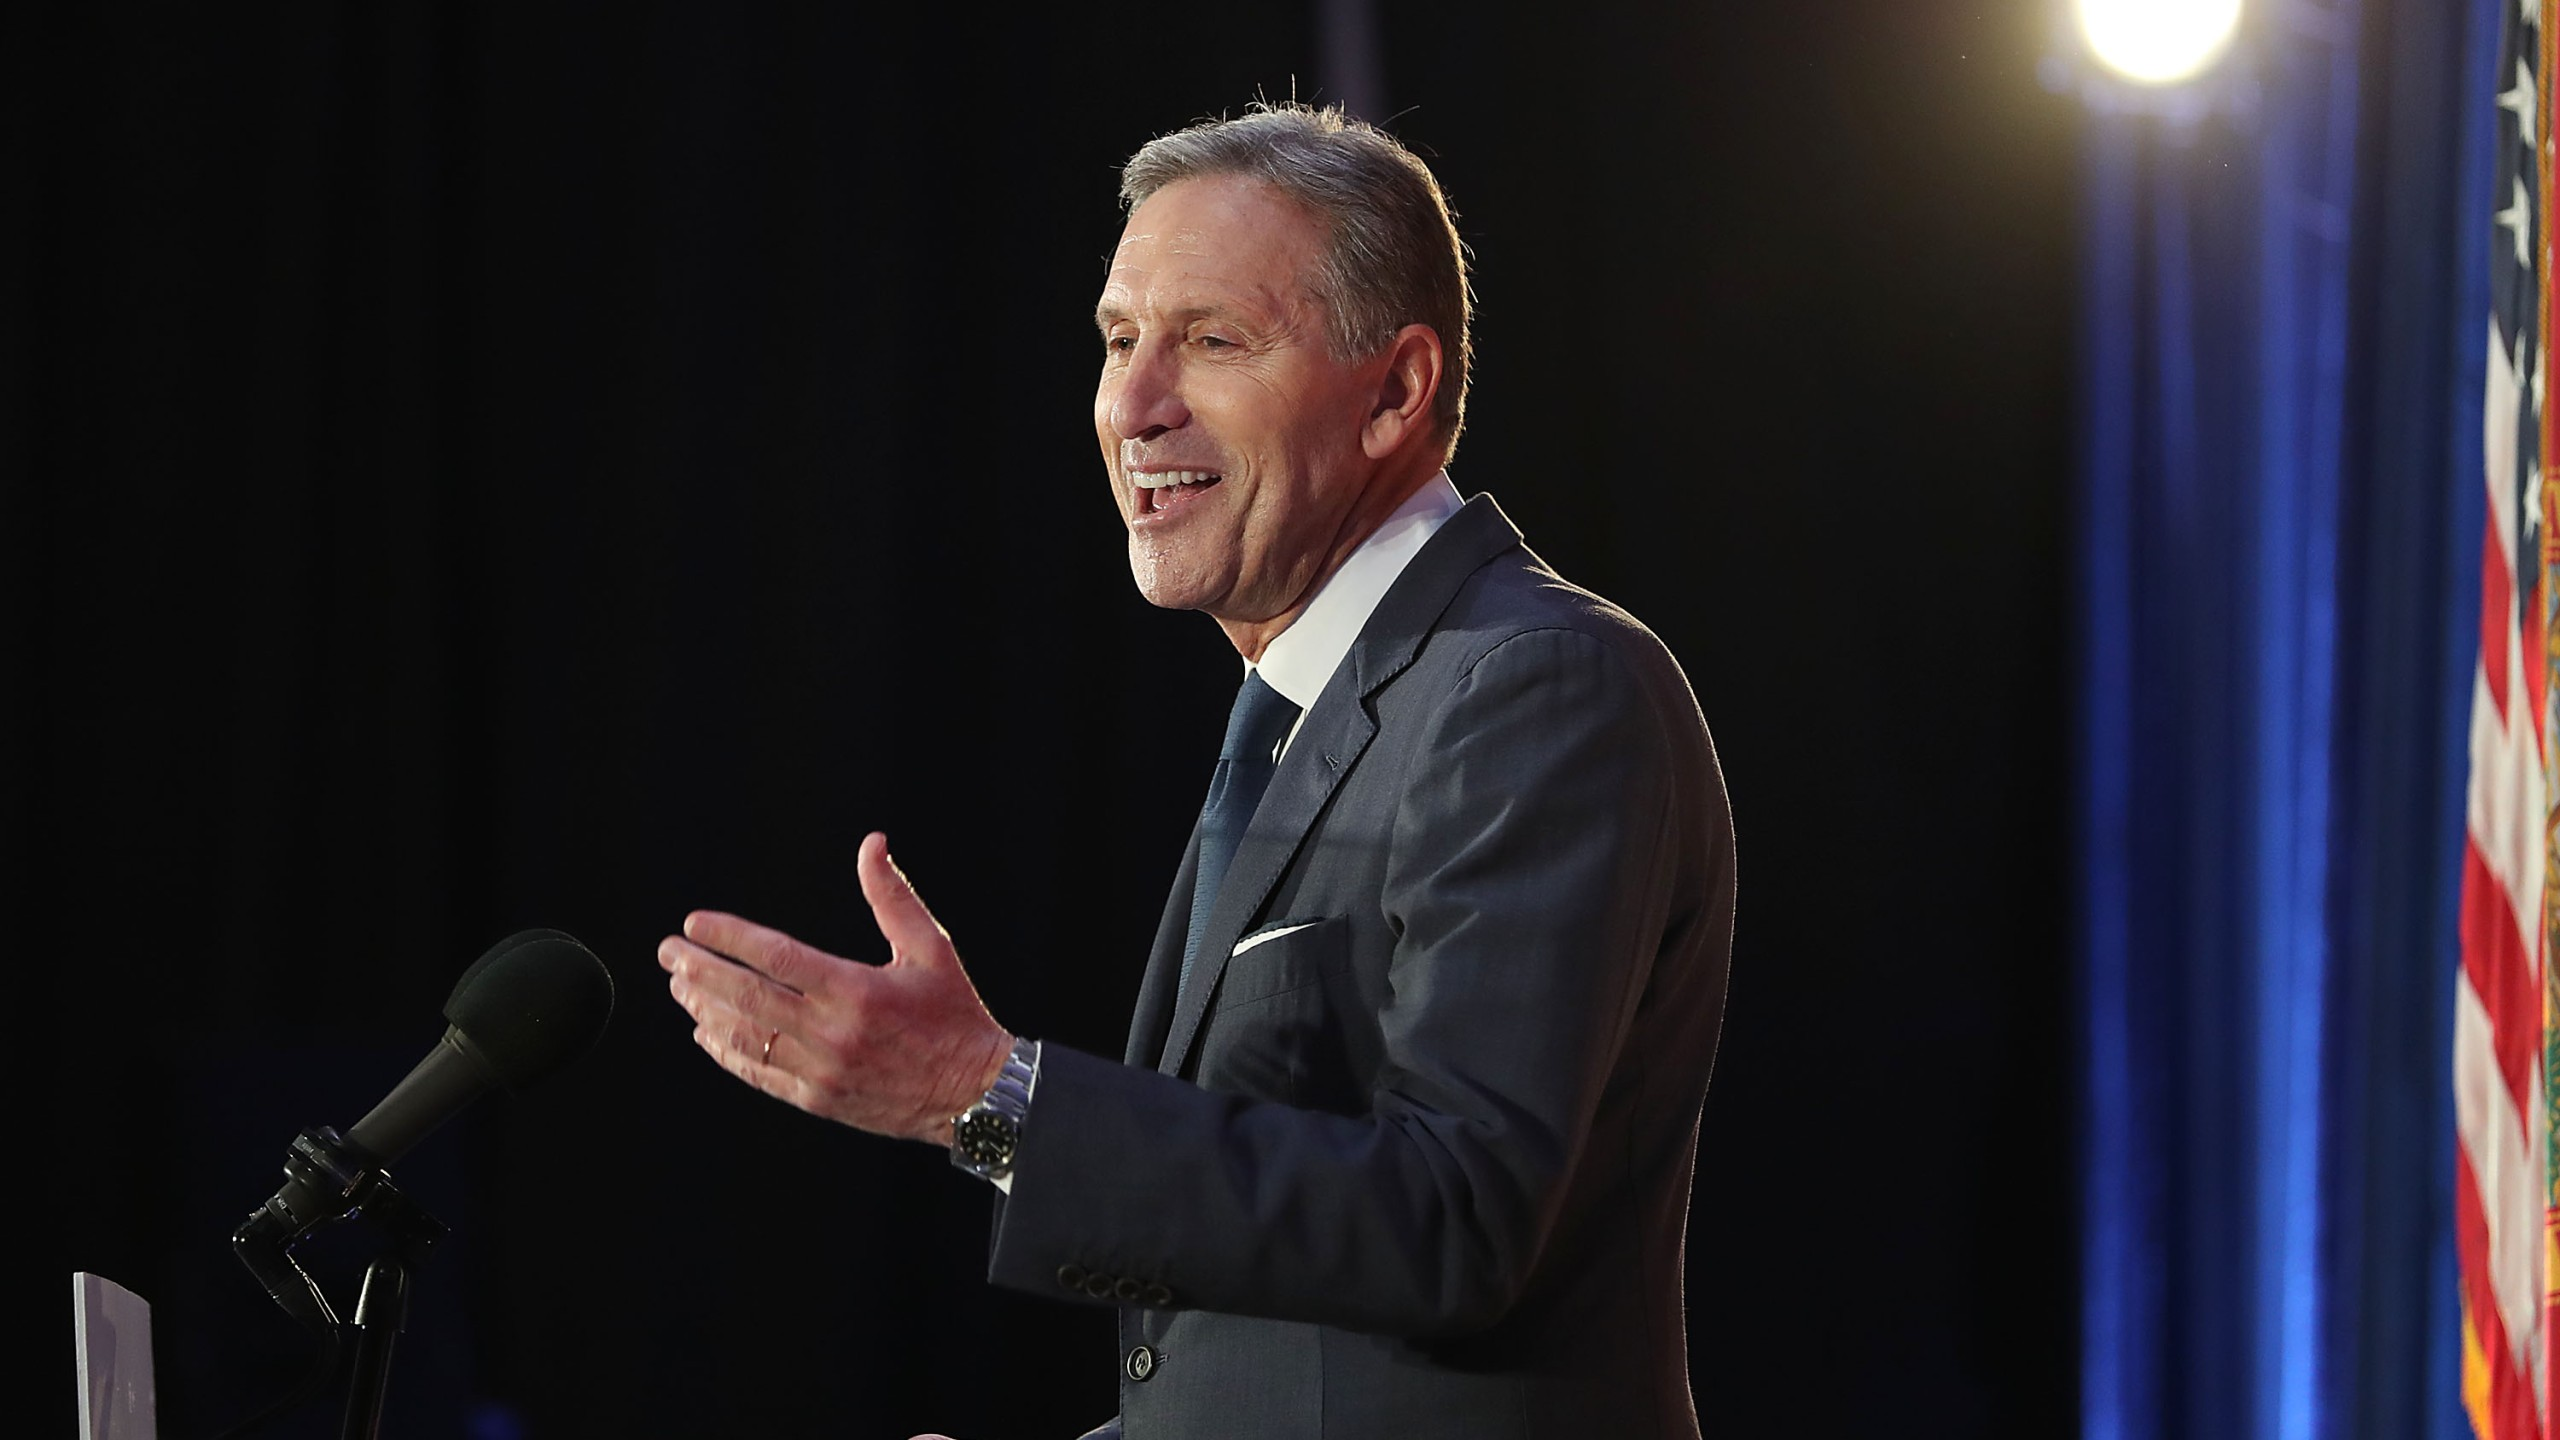 Former Starbucks CEO Howard Schultz speaks during a stop at Miami Dade College on March 13, 2019, in Miami, Florida. (Credit: Joe Raedle/Getty Images)